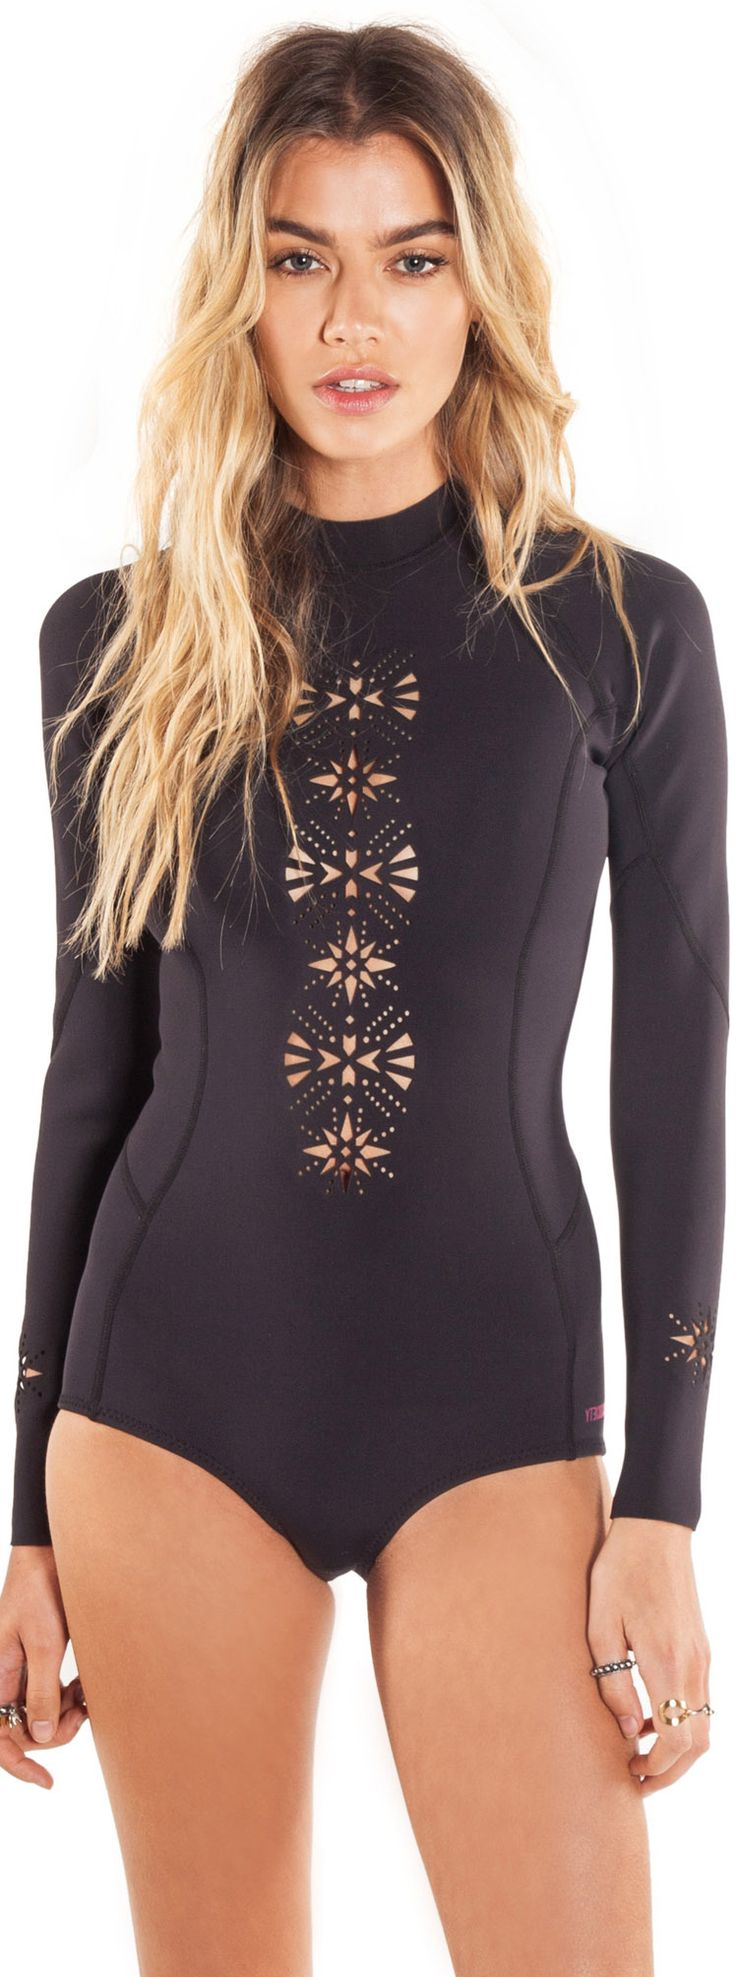 Lazers and surfsuits! - Amuse Society Lasercut Long Sleeve Cheeky One Piece Swimsuit